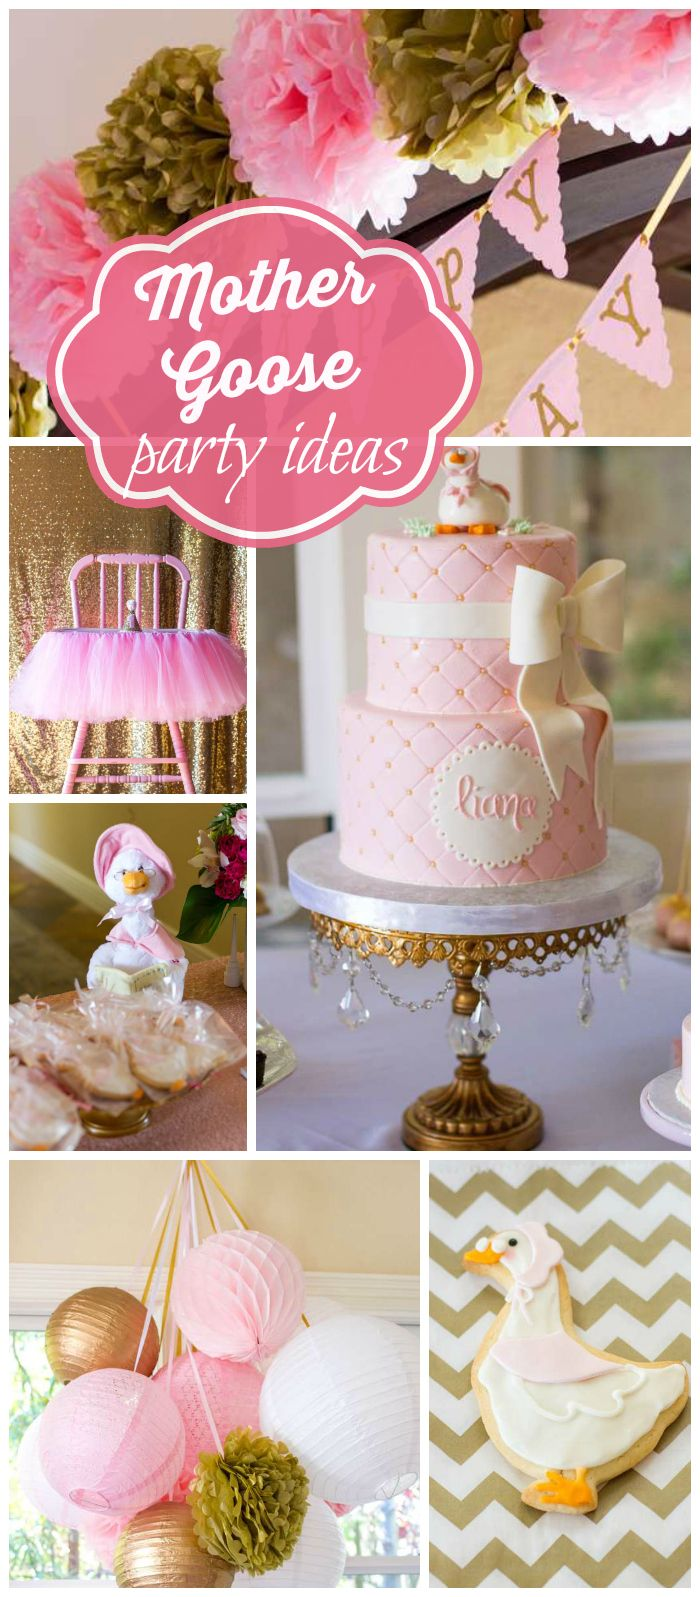 A Mother Goose themed birthday party with crepes, face painting, photo booth and a balloon artist! See more party planning ideas at CatchMyParty.com!